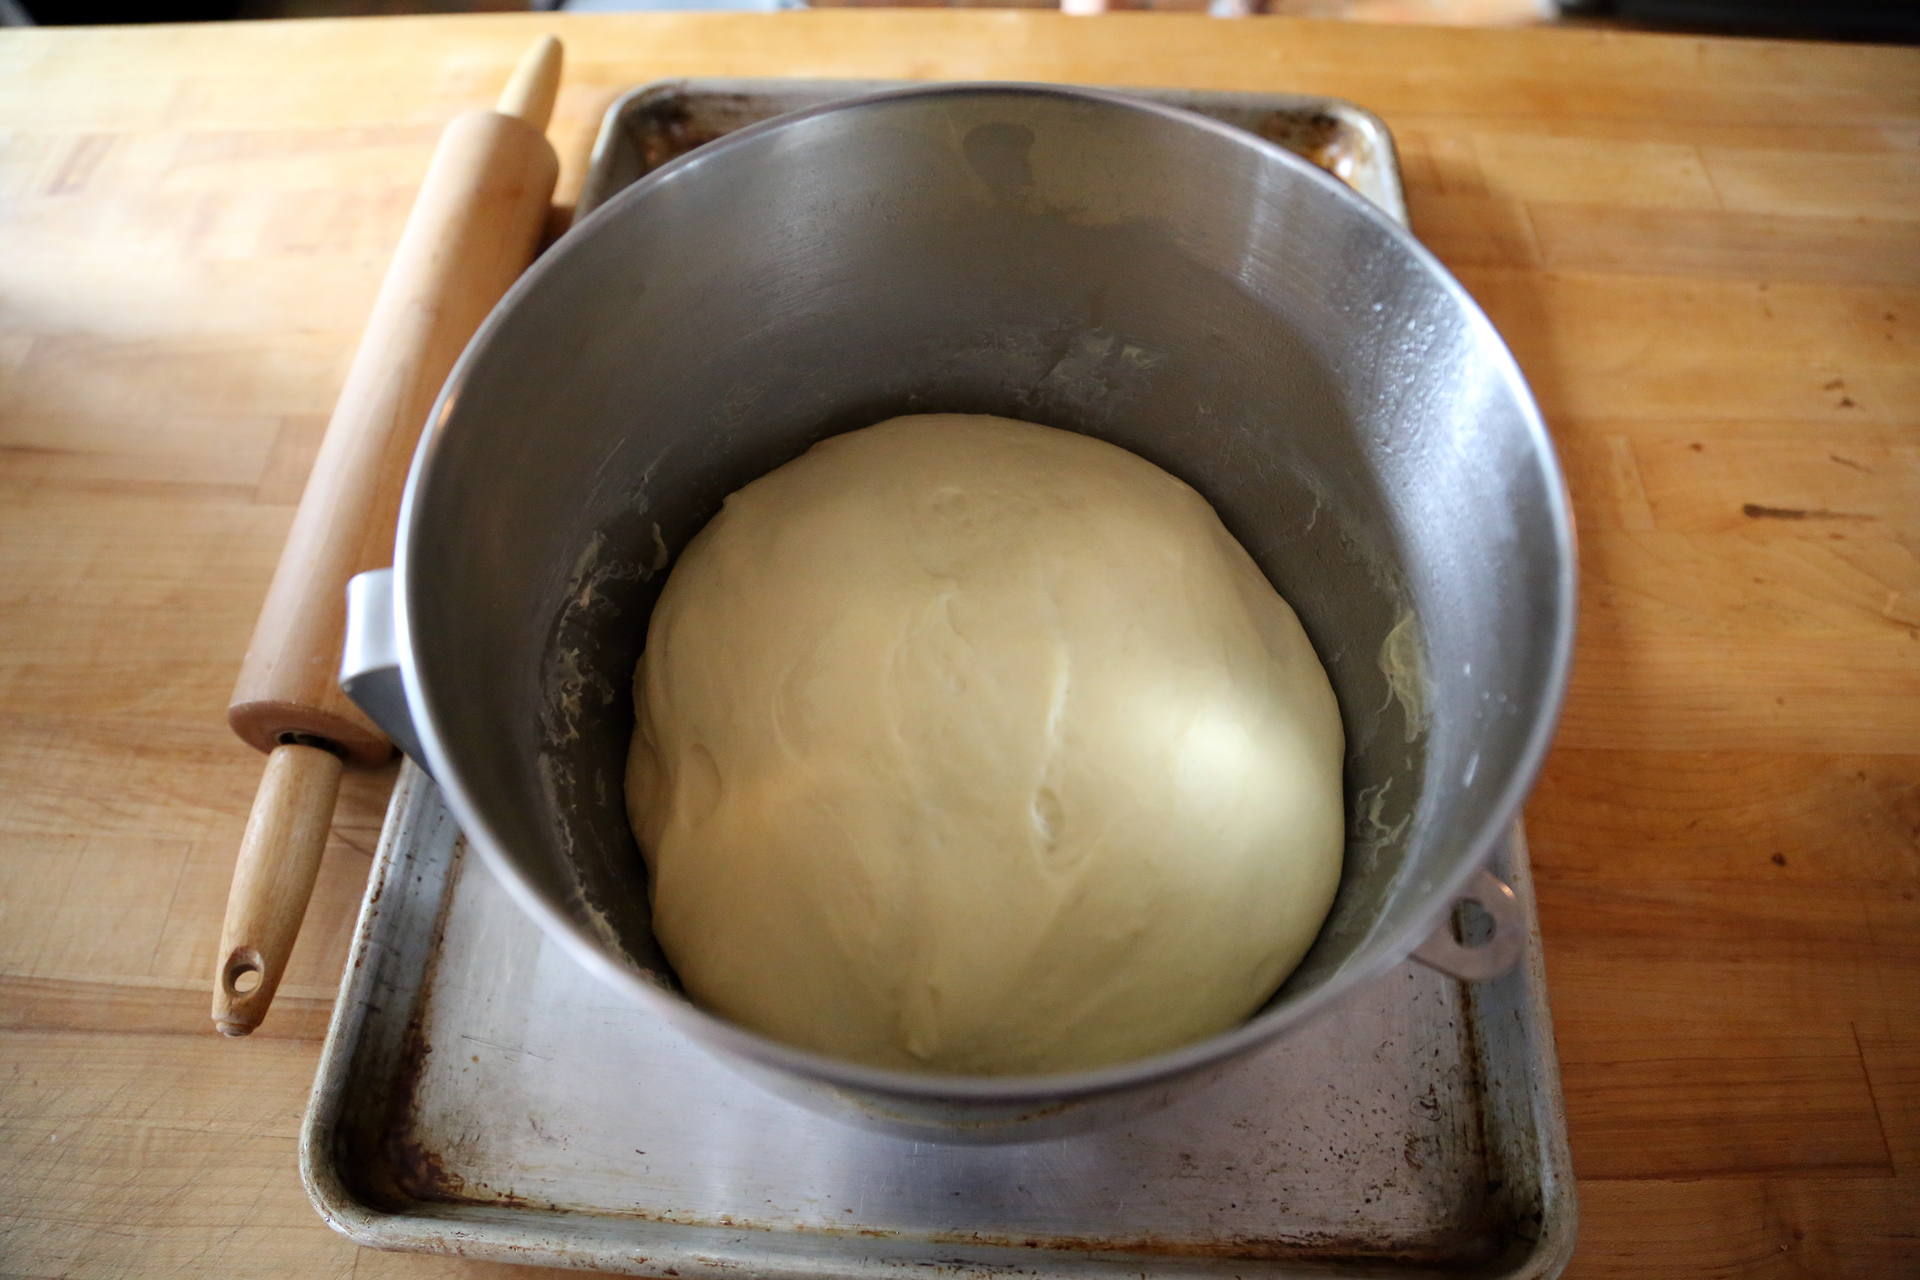 The raised dough is ready to roll out.